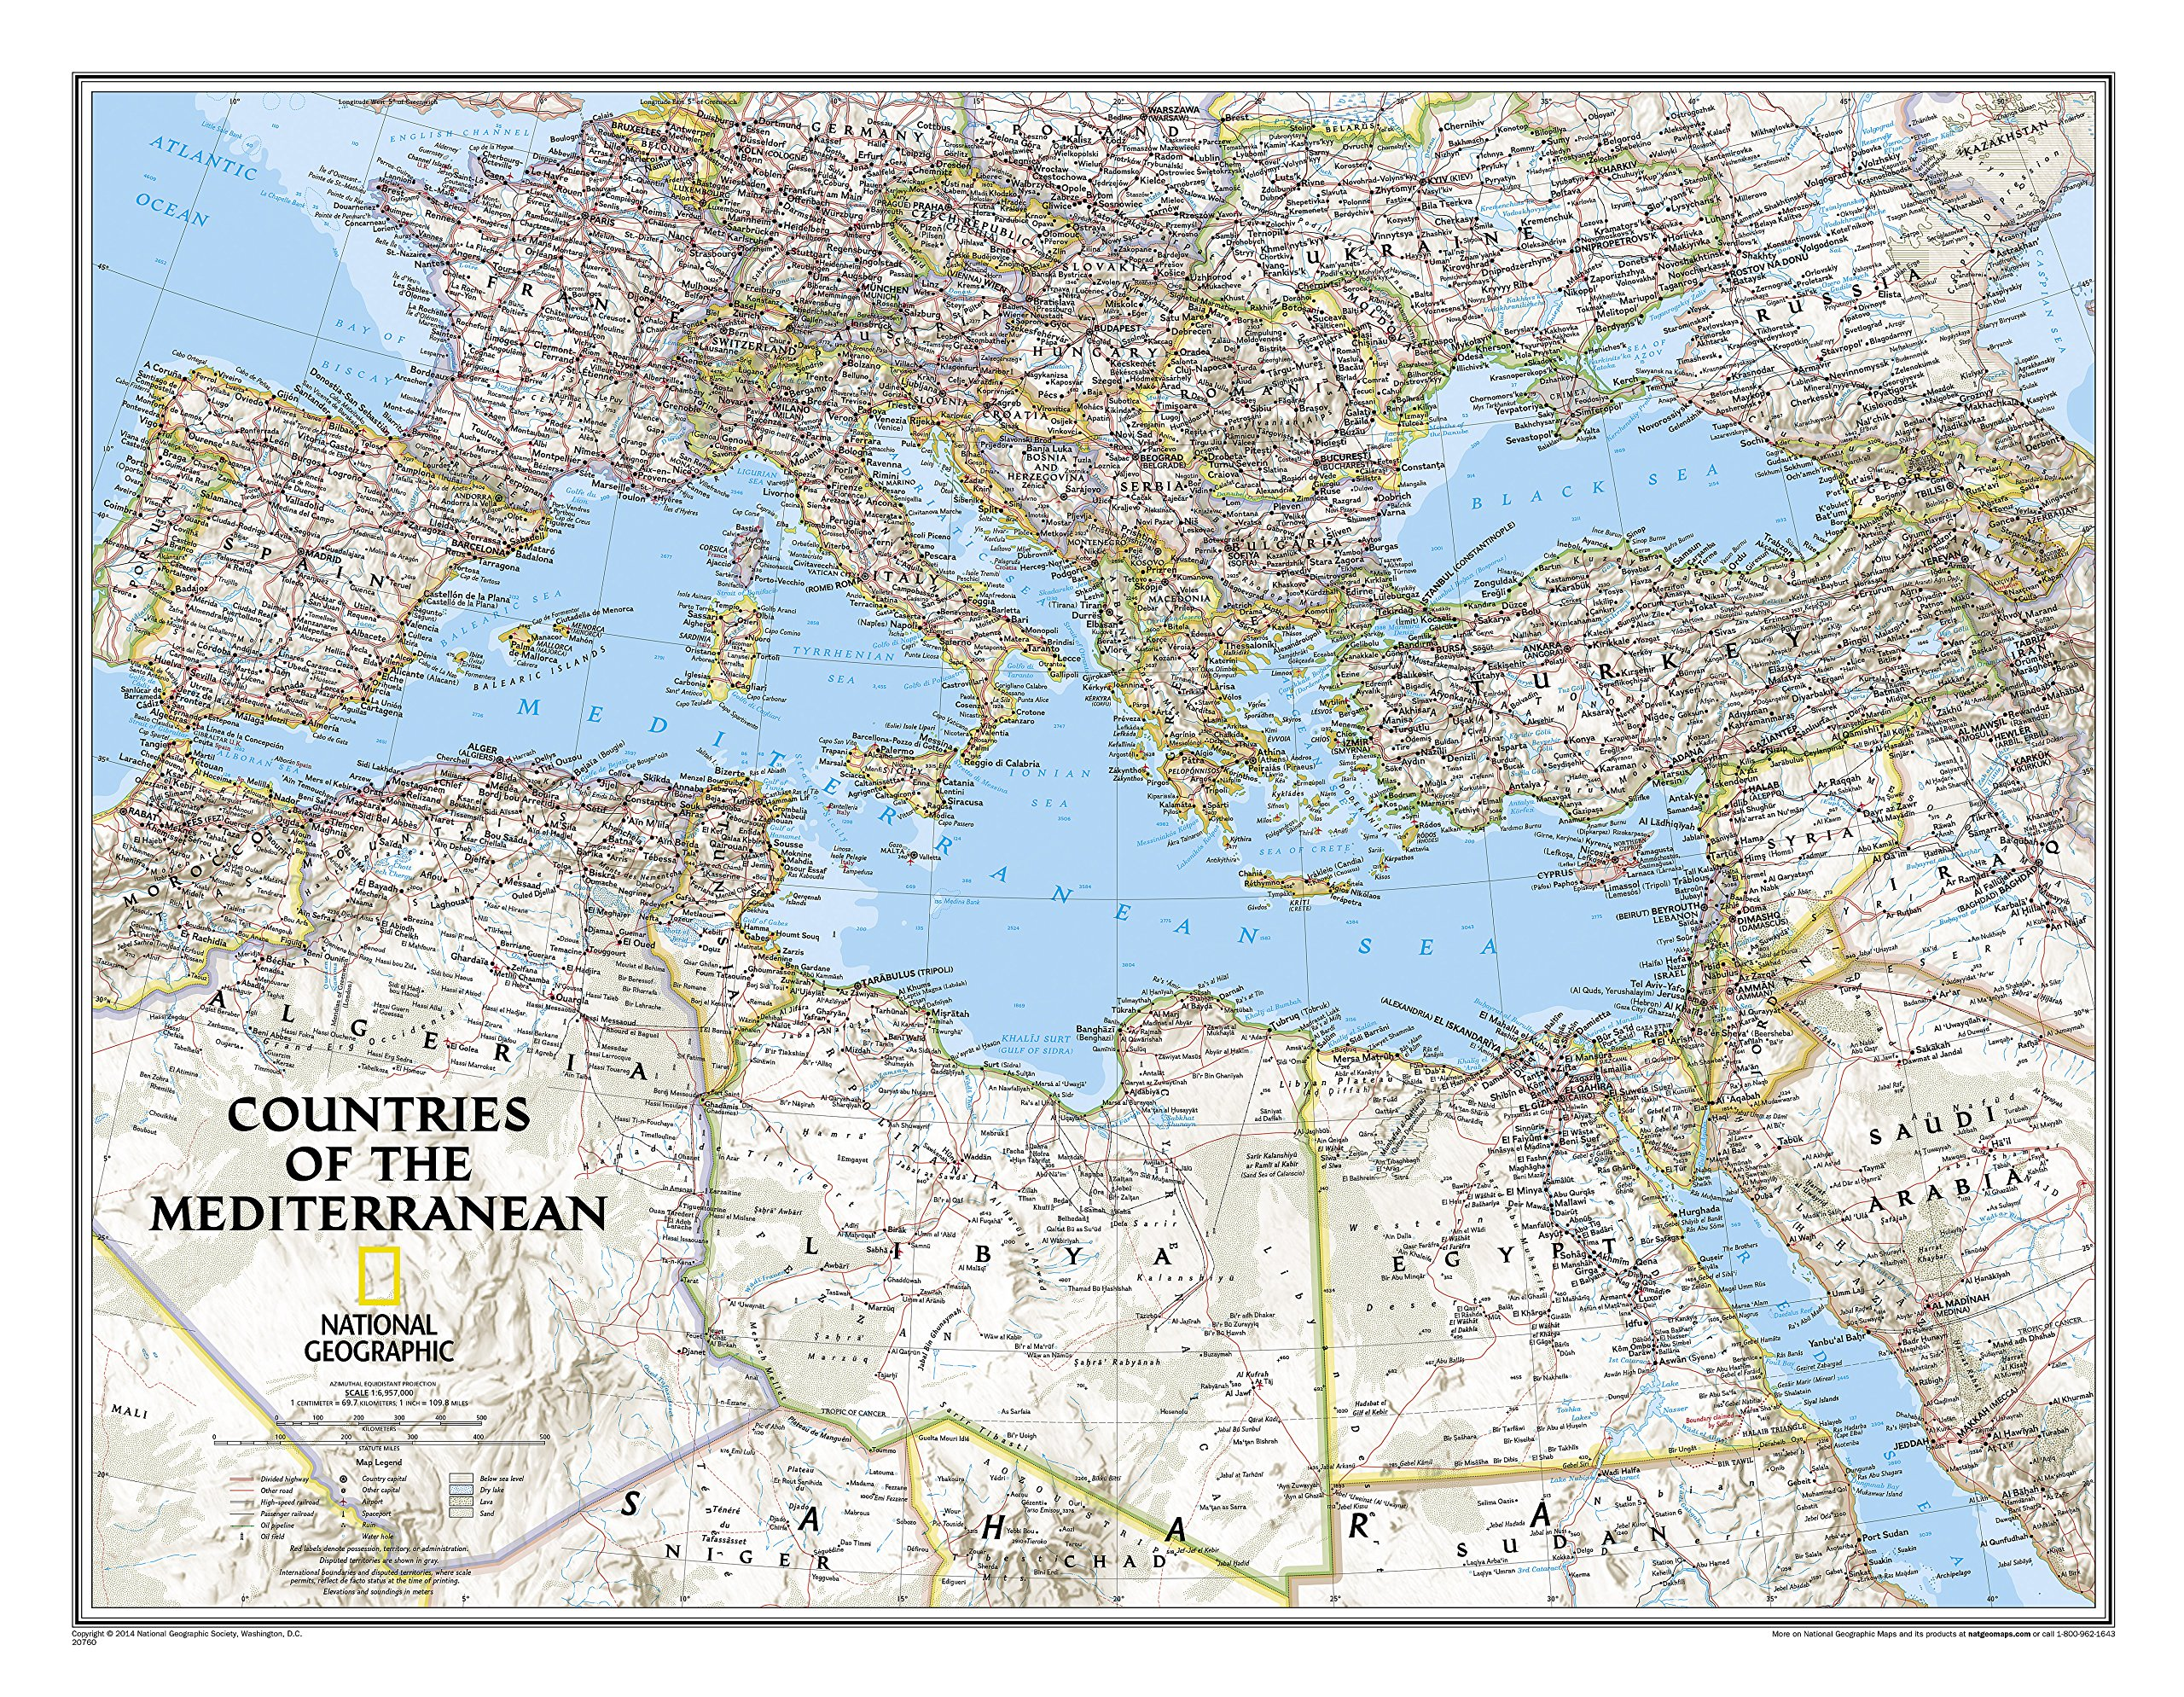 National Geographic: Countries of the Mediterranean Classic Wall Map (30.25 x 23.5 inches) (National Geographic Reference Map)